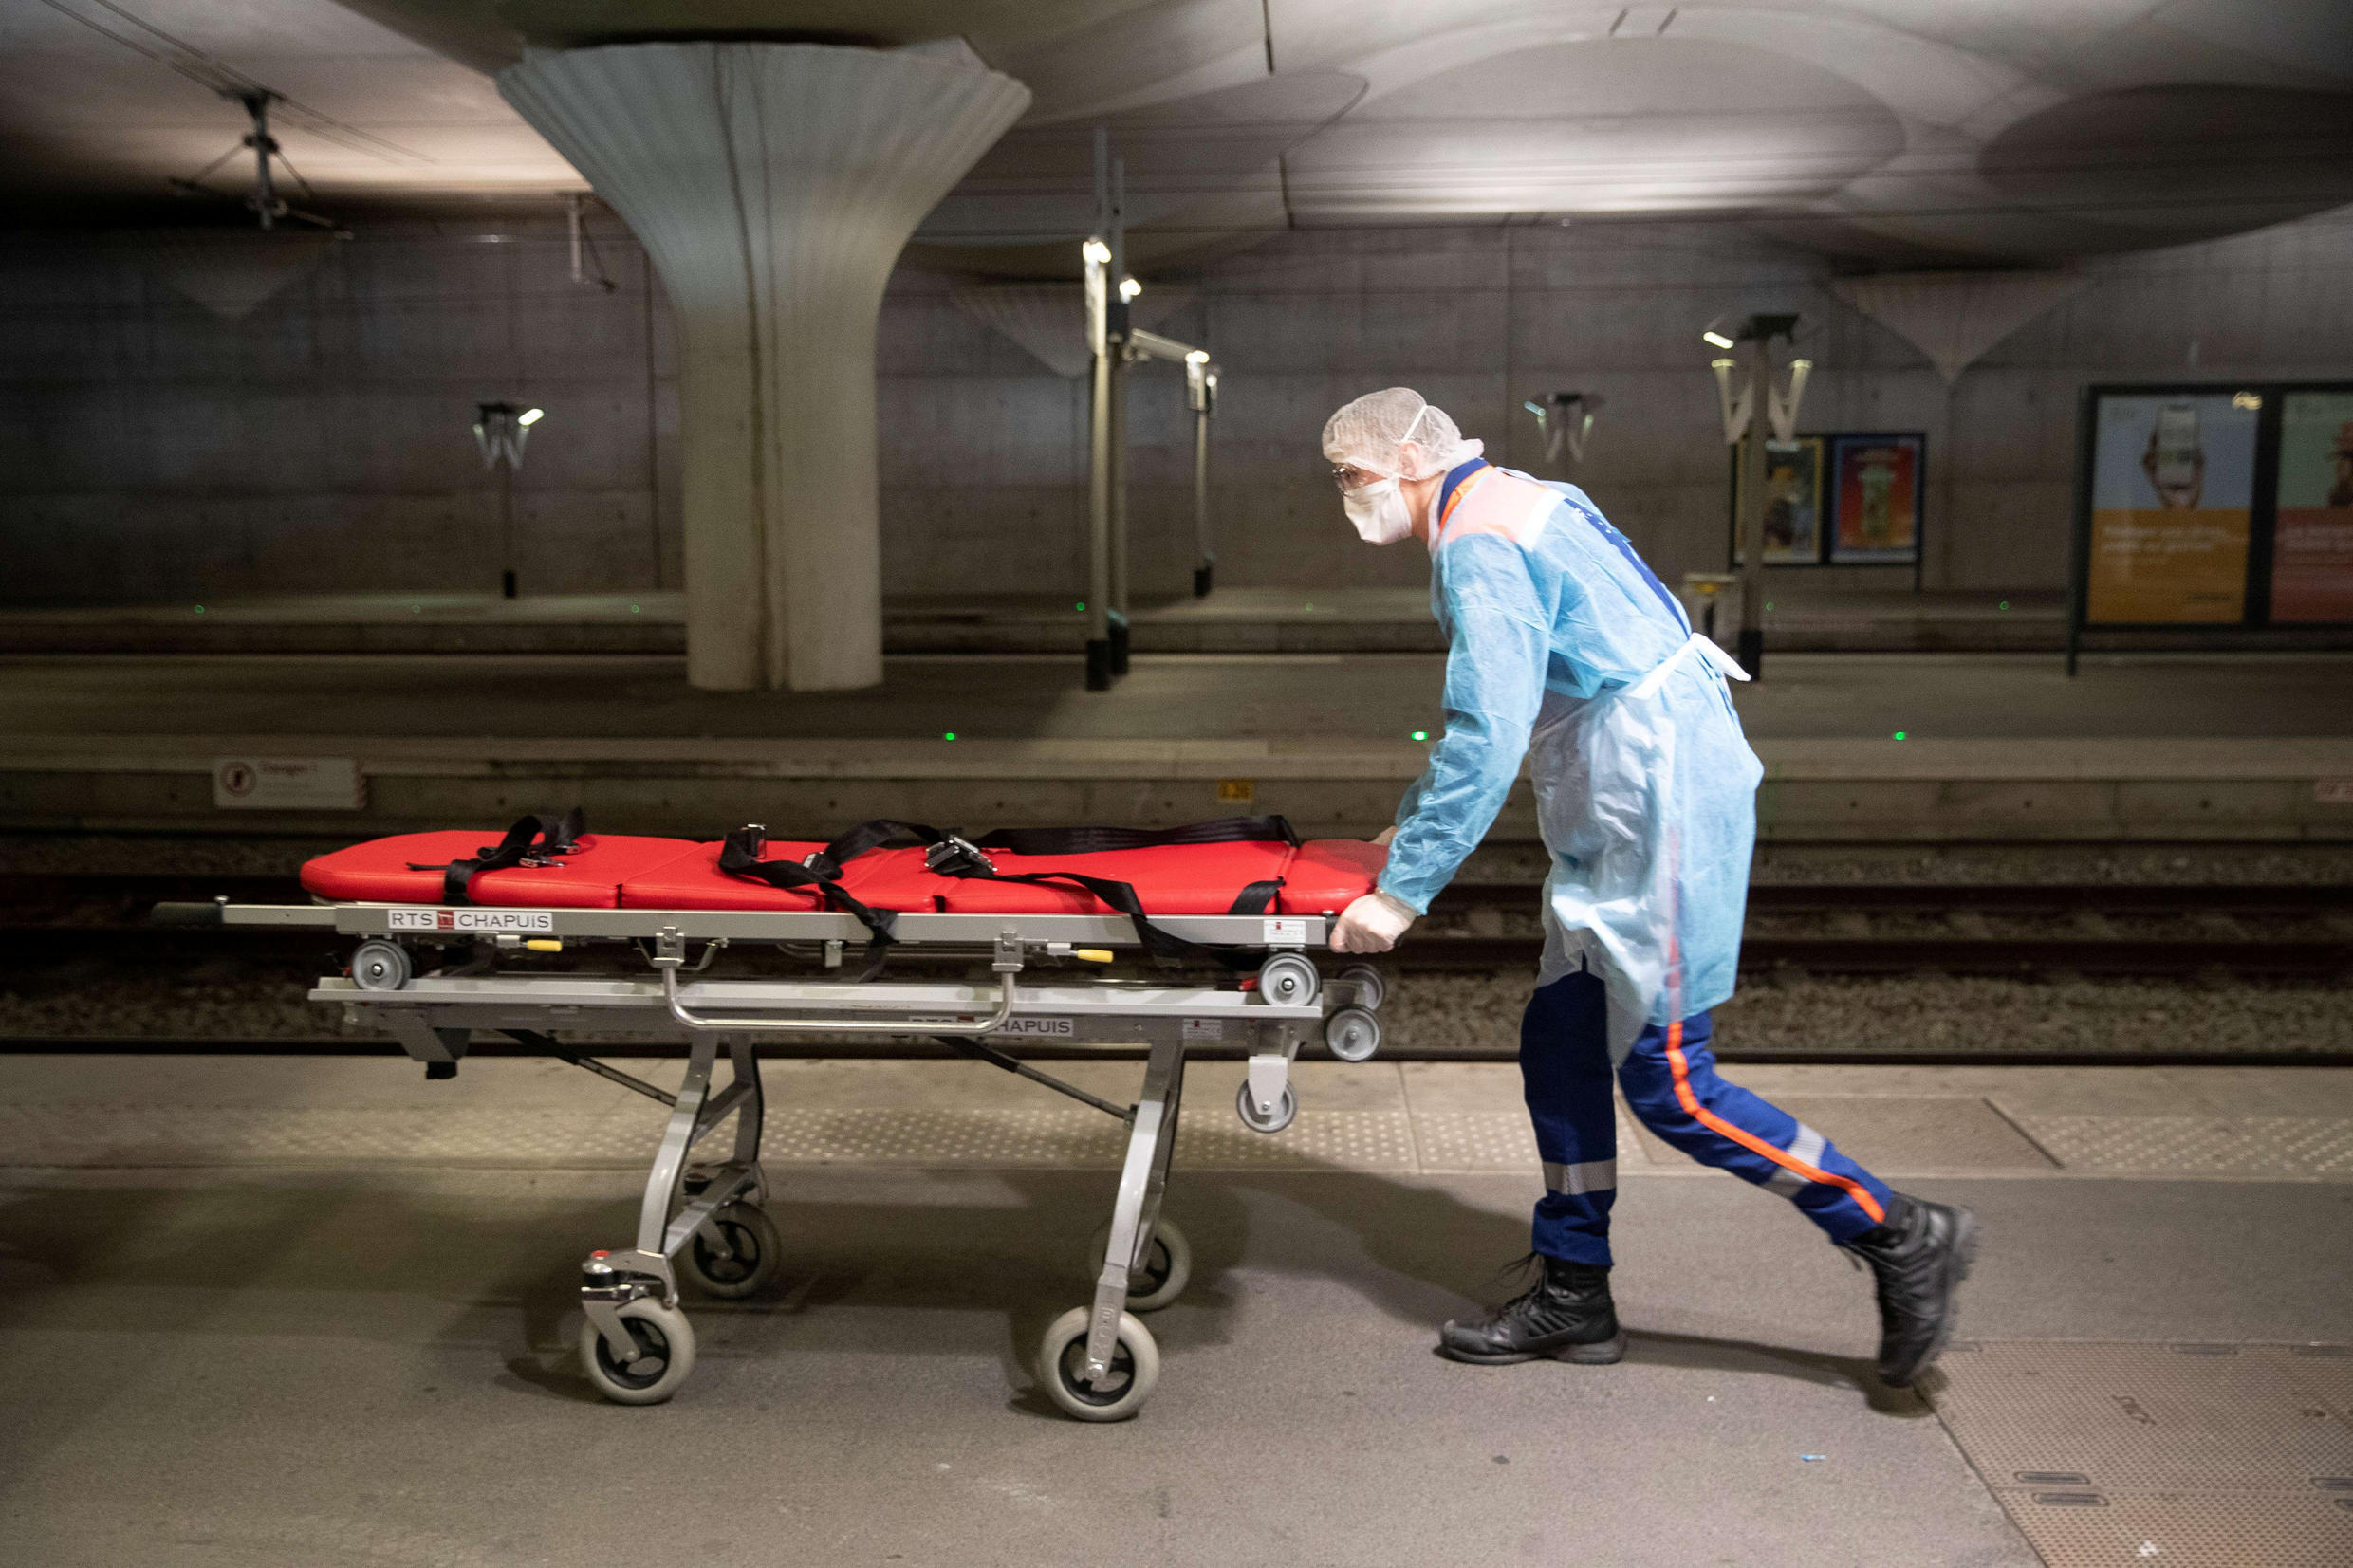 A medical staff member pushes a stretcher on a platform at the Gare d'Austerlitz train station as the spread of the coronavirus disease continues in Paris, France on April 1, 2020.